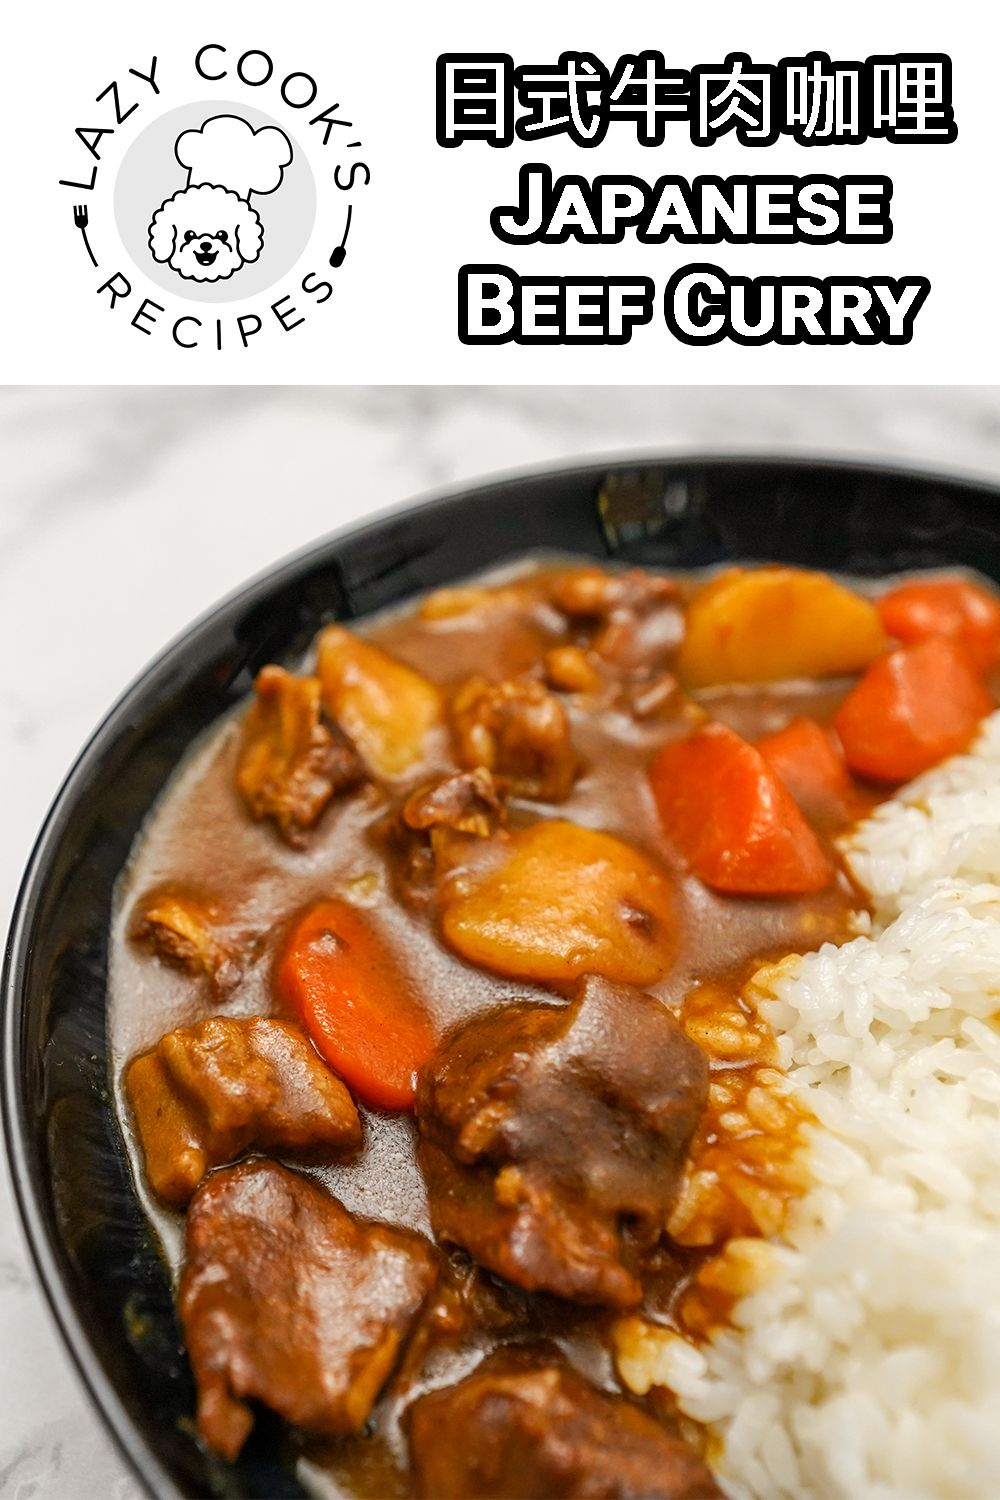 Japanese Beef Curry In 2020 Beef Curry Japanese Beef Curry